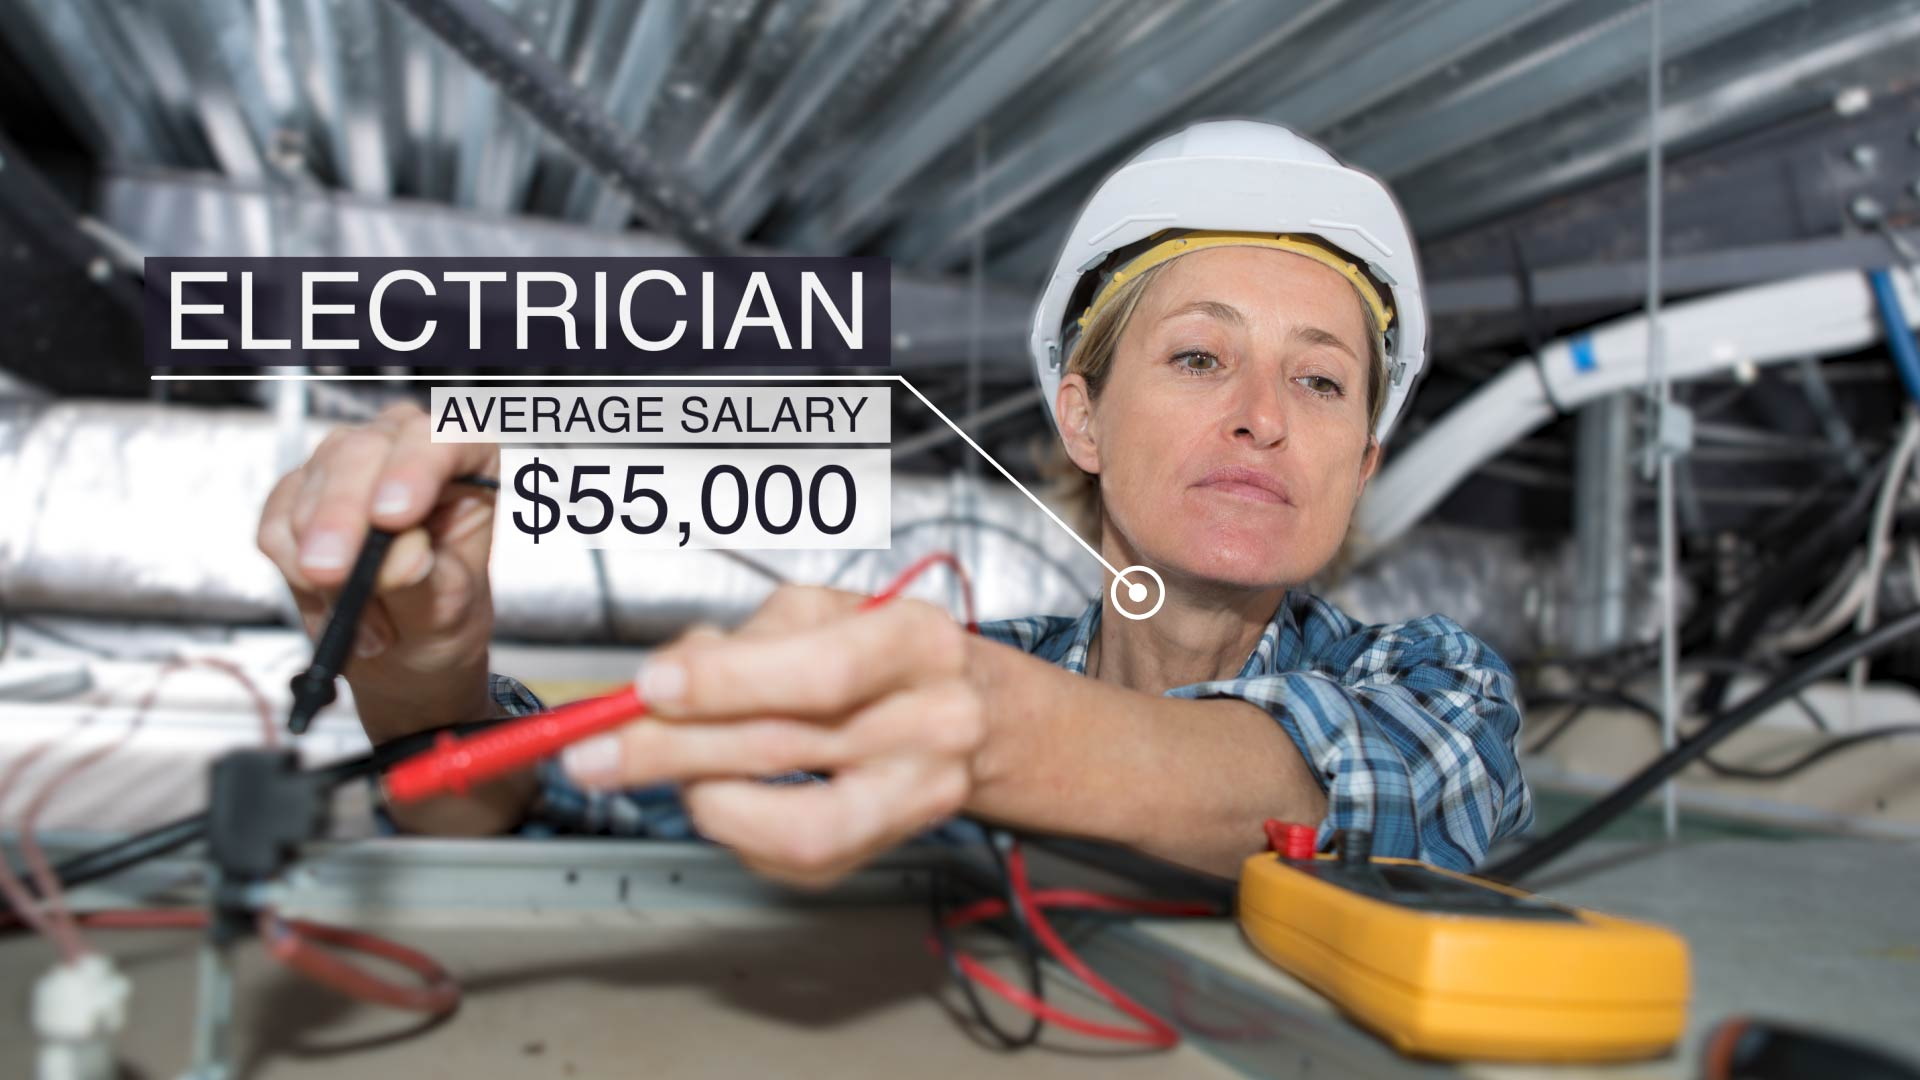 American Graduate Electrical Wiring Salary Electrician